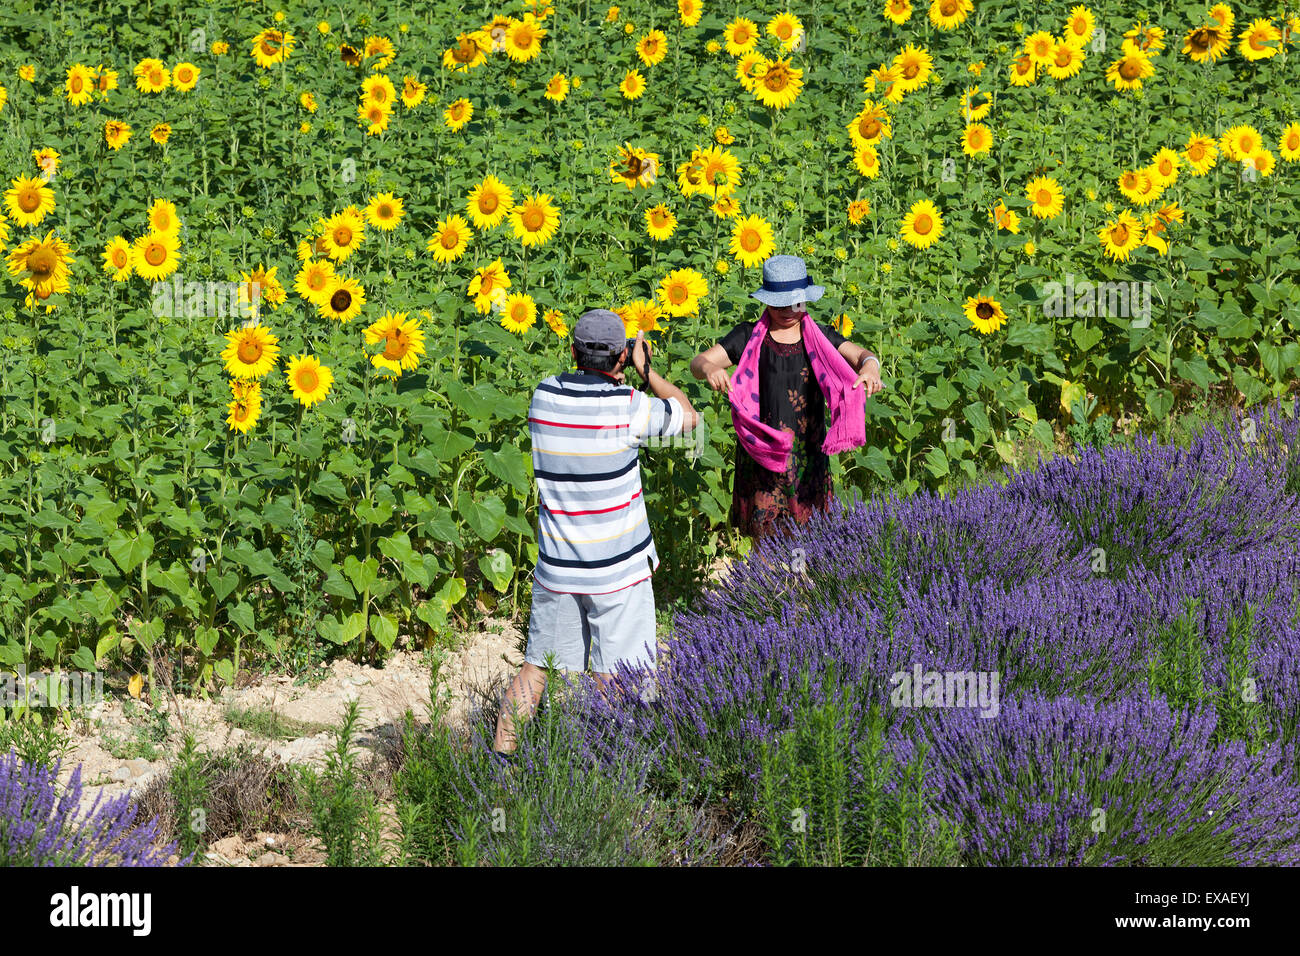 A Chinese couple taking souvenir pictures in a hybrid lavender and sunflower field (Valensole - France). - Stock Image